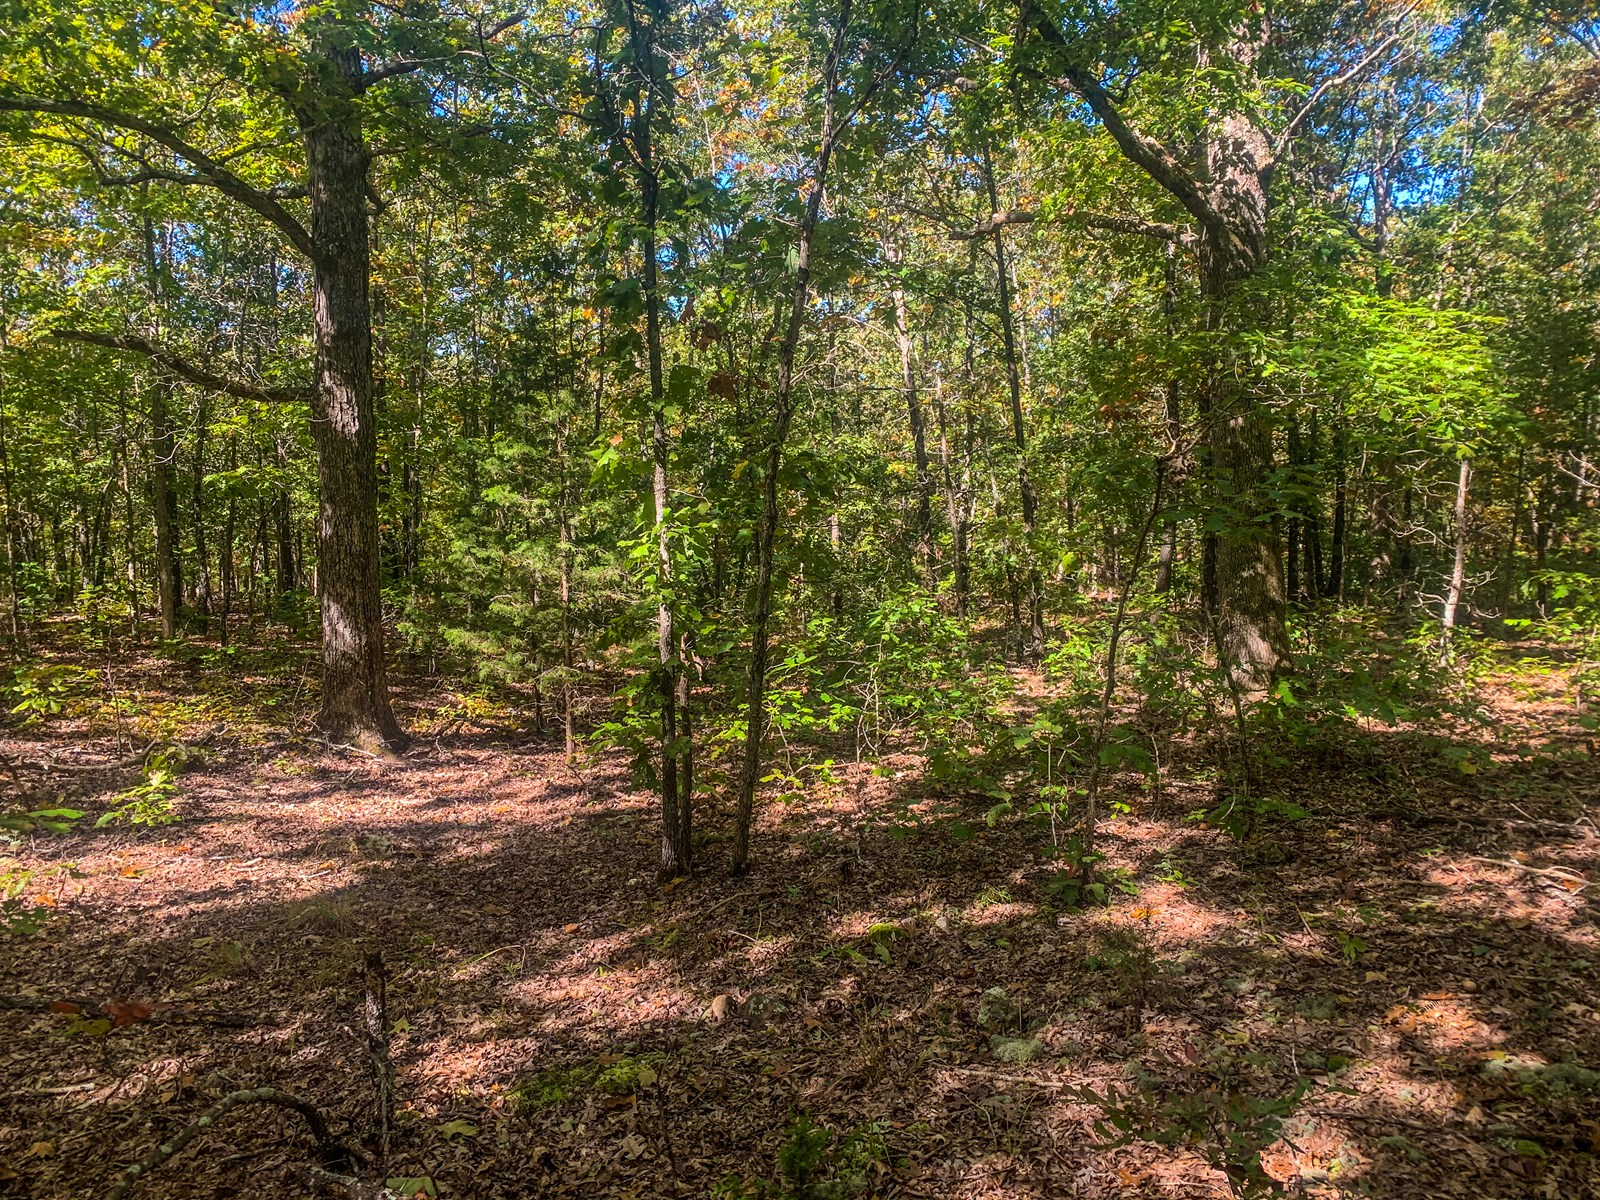 40 acres ready for hunting or building your dream home